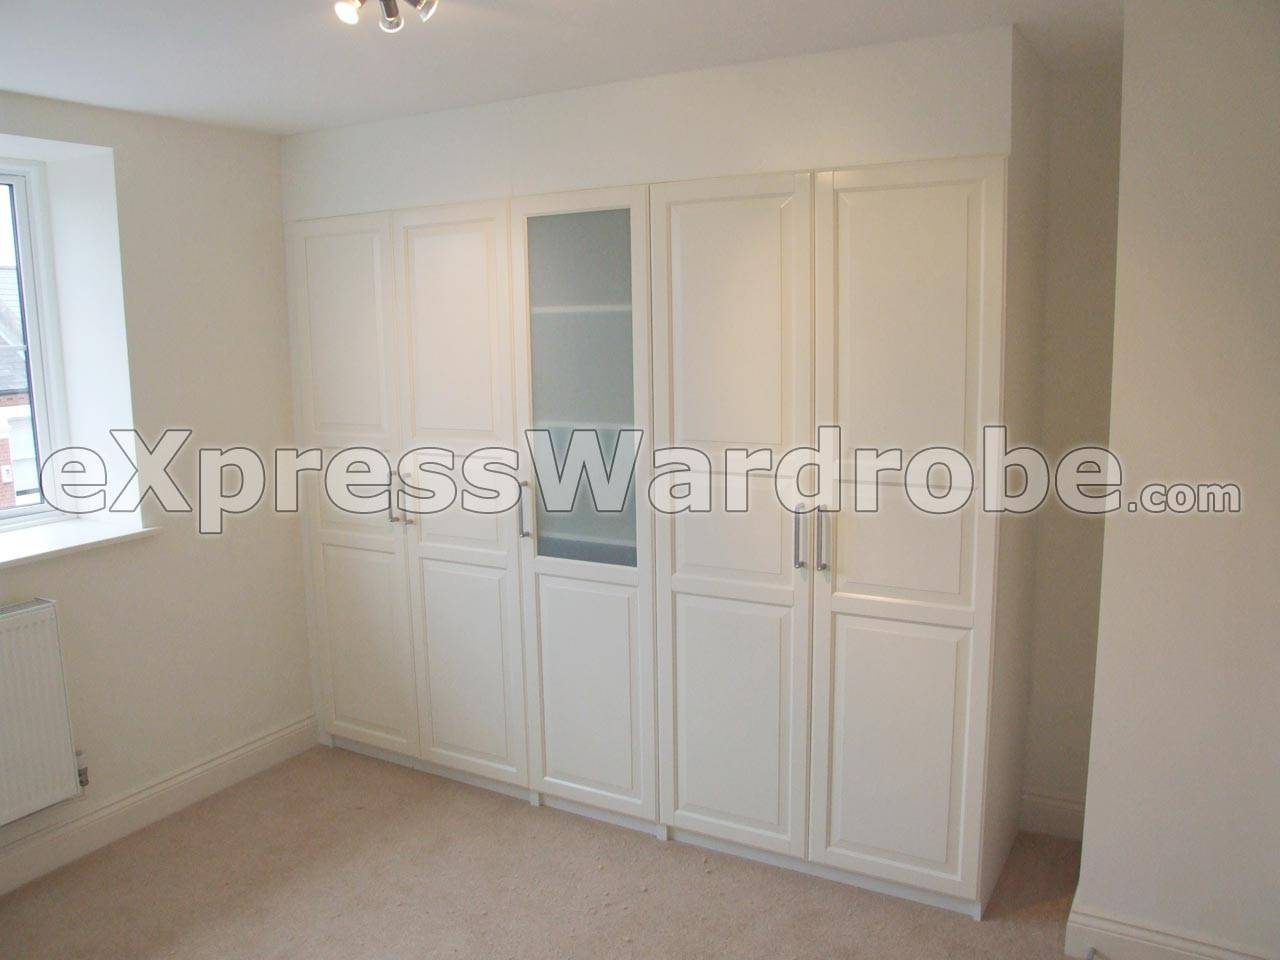 Cheap Fitted Wardrobes | Fitted Bedrooms | Fitted Bedroom in Discount Wardrobes (Image 10 of 30)